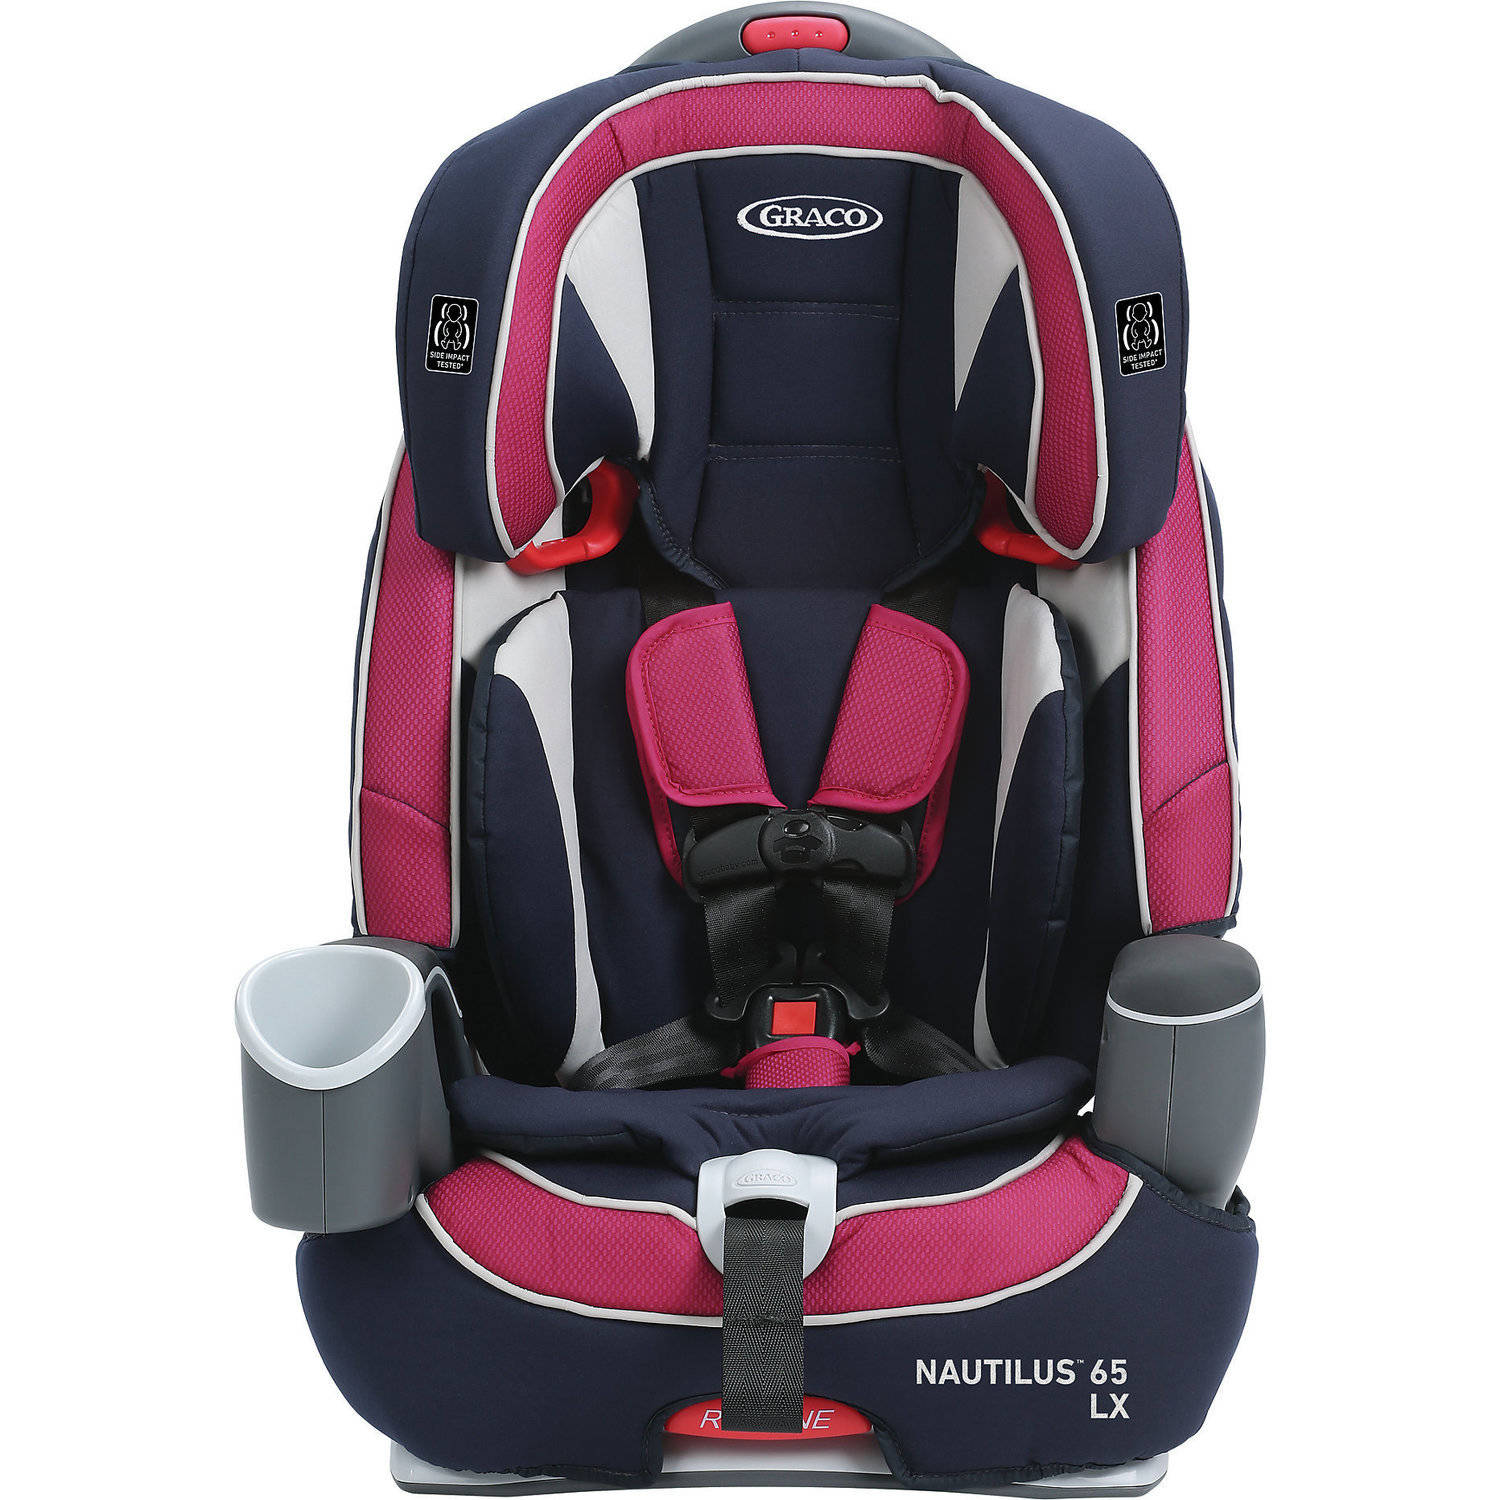 Graco nautilus 3 in 1 multi use car seat - Graco Nautilus Lx 65 3 In 1 Harness Booster Choose Your Color Walmart Com